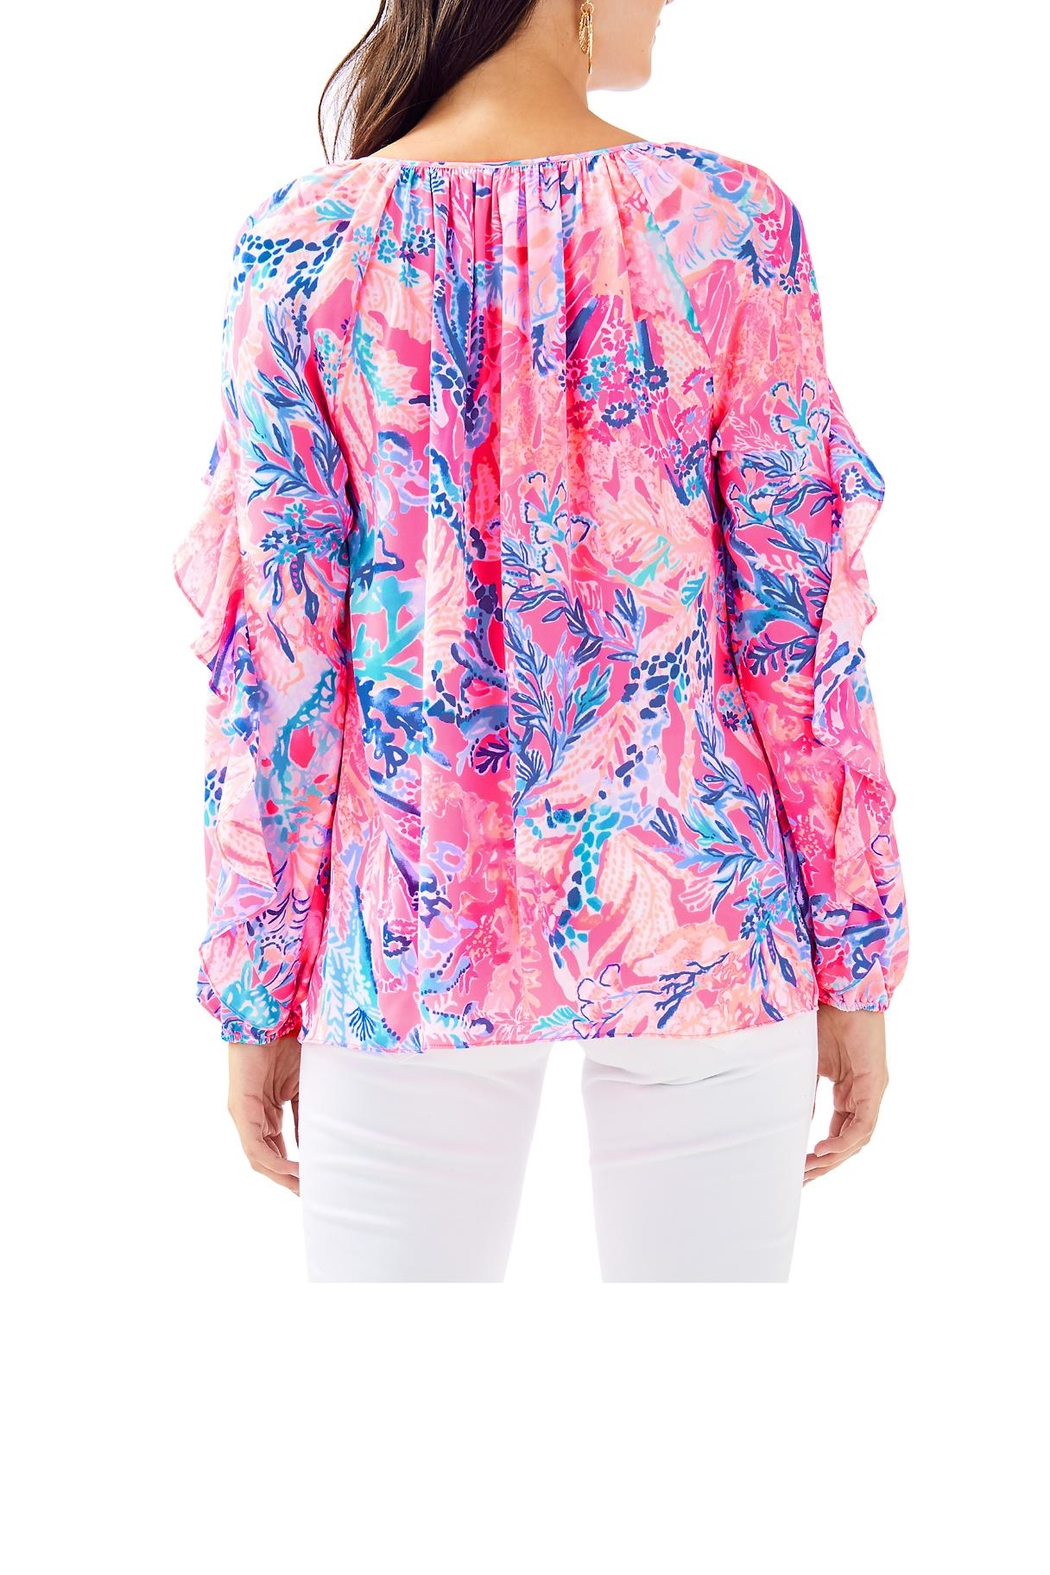 Lilly Pulitzer Elora Top - Front Full Image